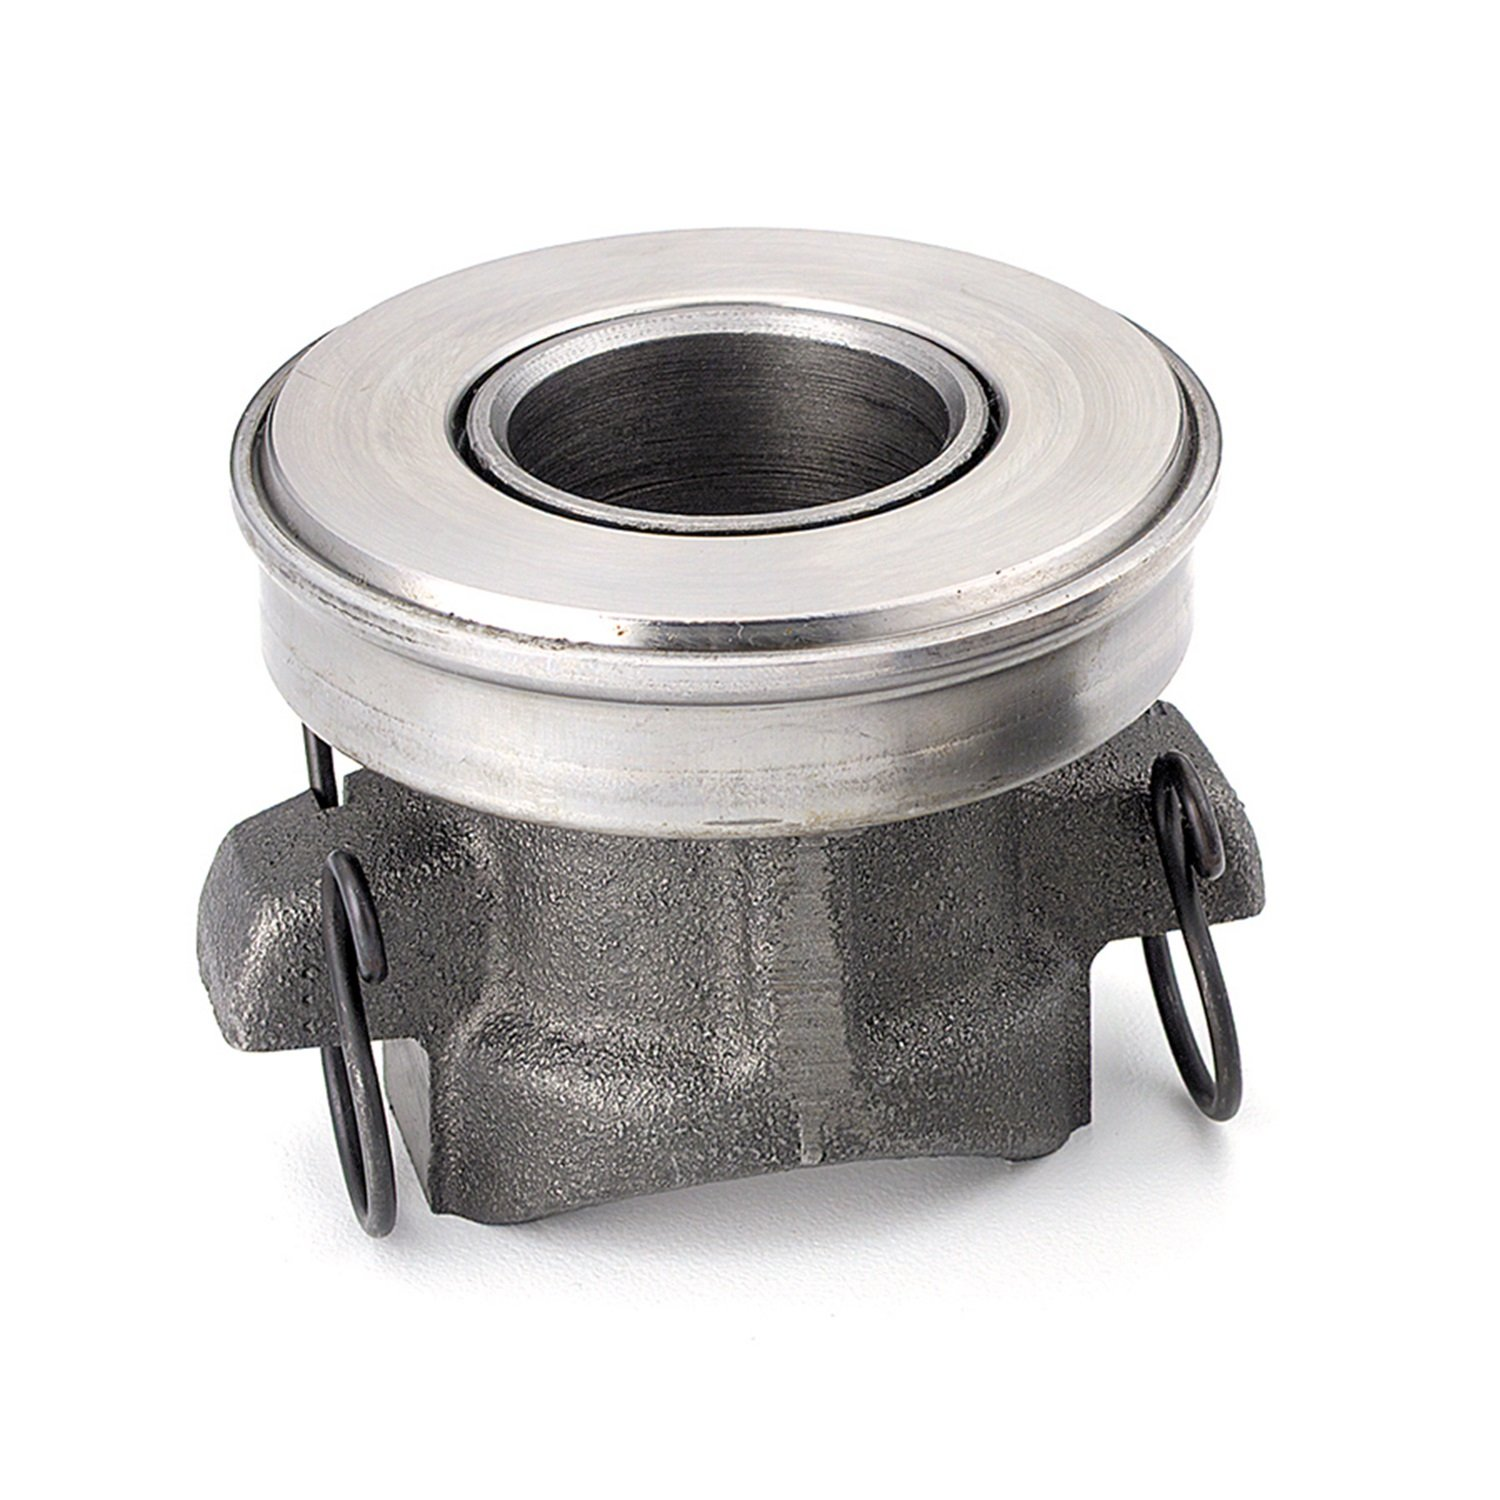 Hays 70110 Bearing 10.5 Clutch For Select Dodge Vehicles